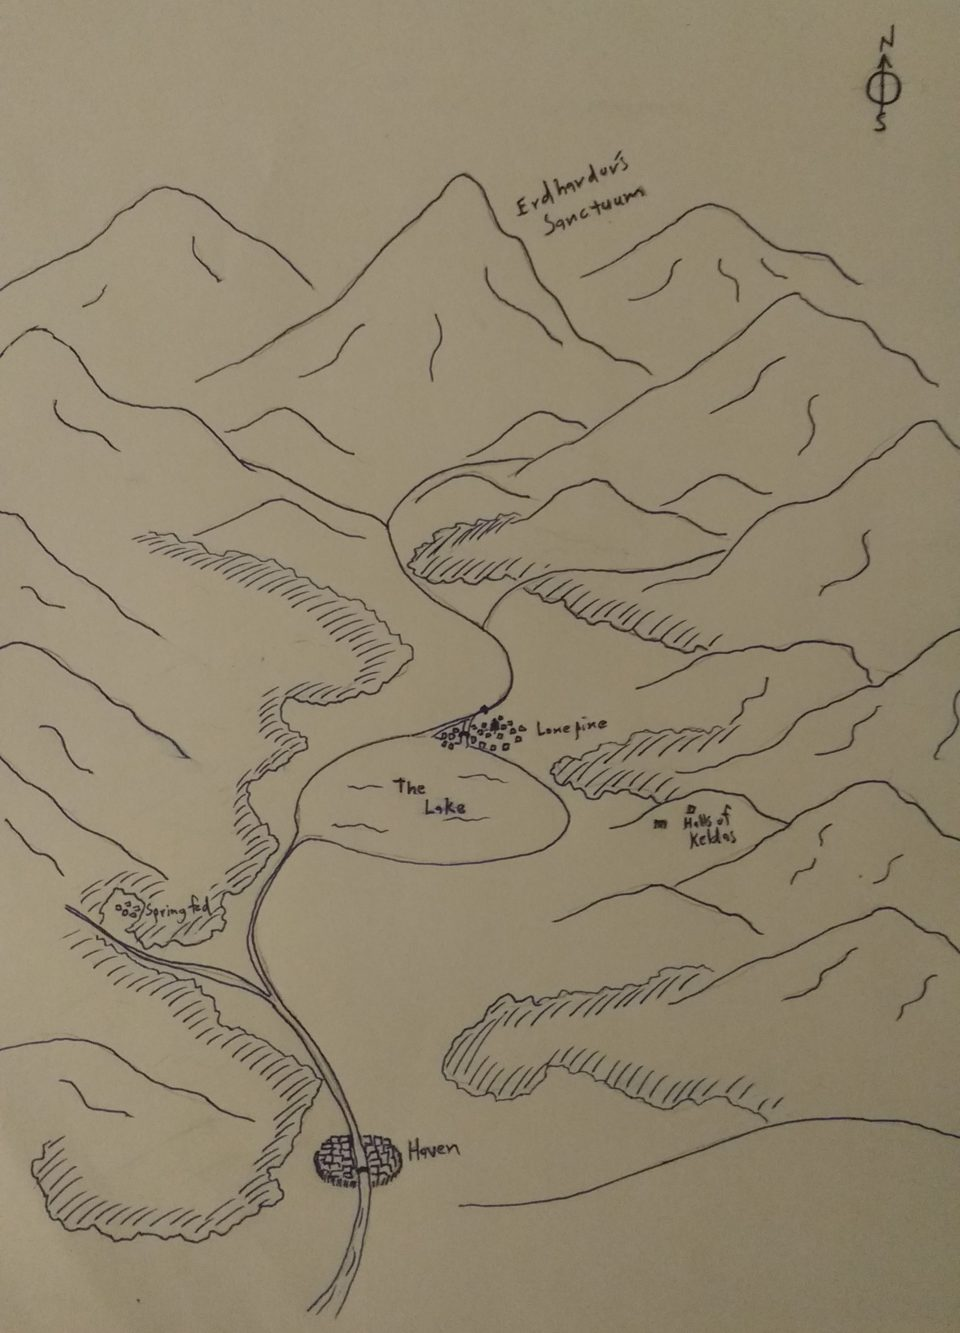 Map of the valley that is the home of the player characters in the Celestial Winter campaign.